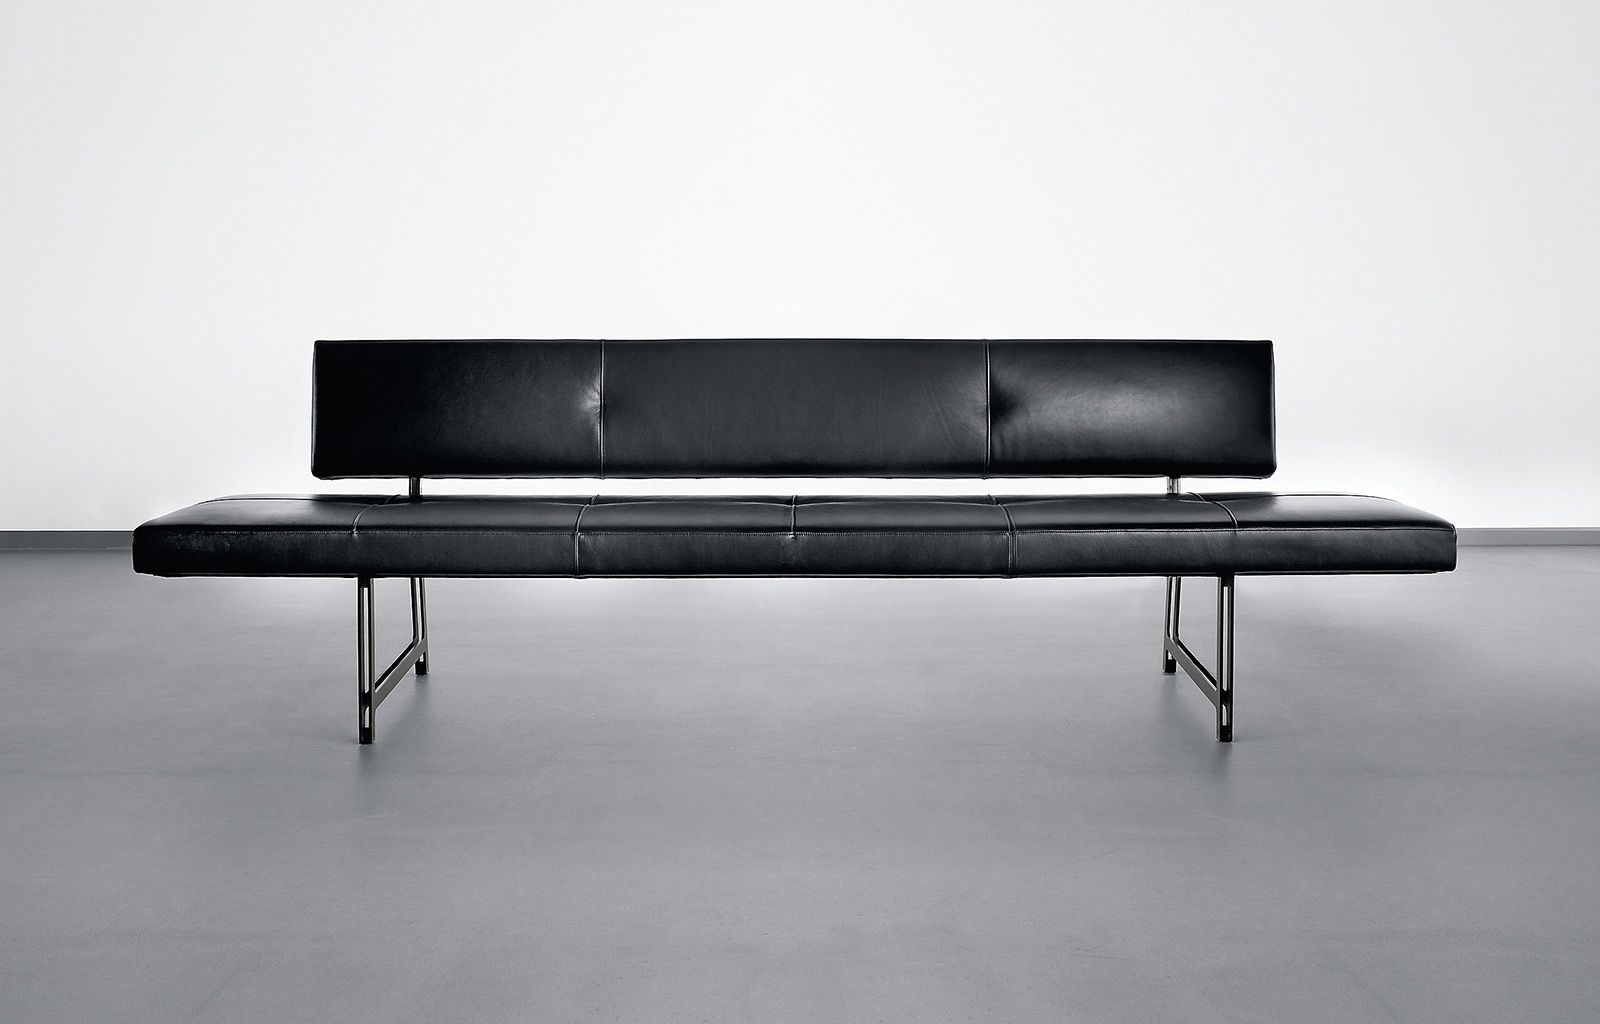 cbo computer und b rotechnikvertrieb oberland gmbh walter knoll st hle lounge tische. Black Bedroom Furniture Sets. Home Design Ideas